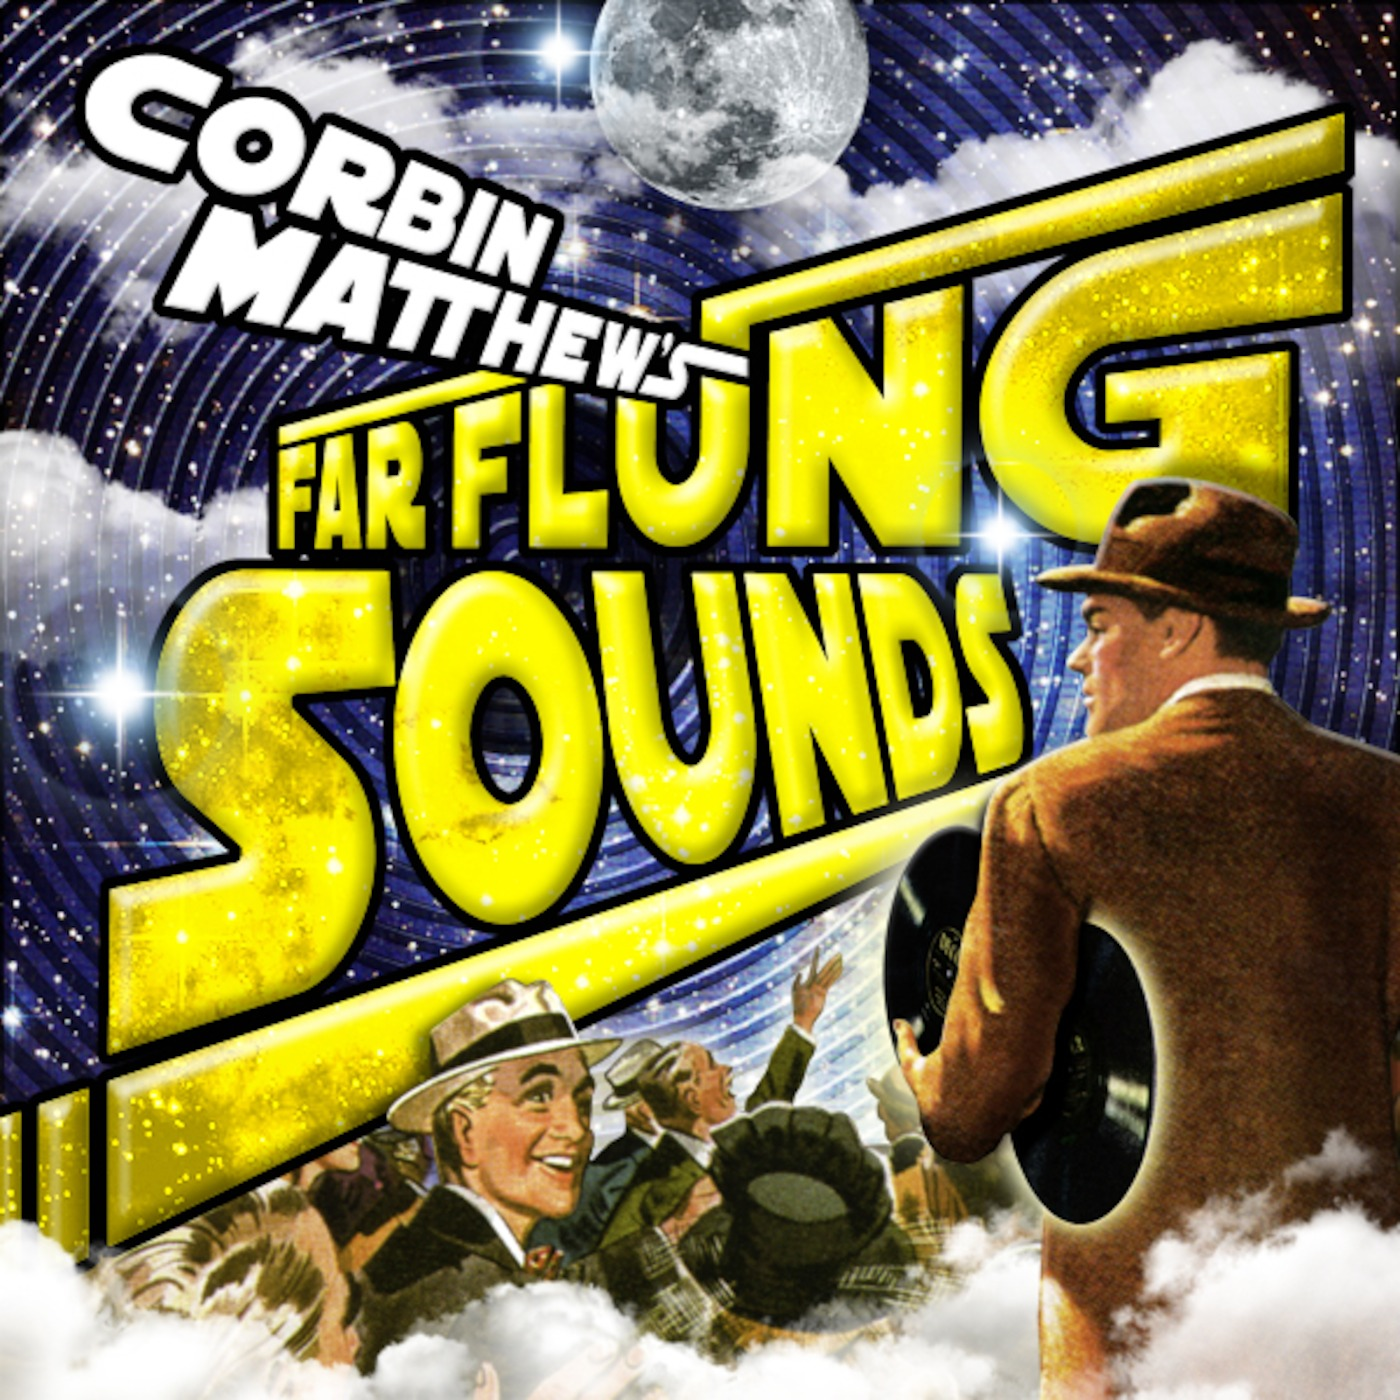 Corbin Matthew's Far Flung Sounds